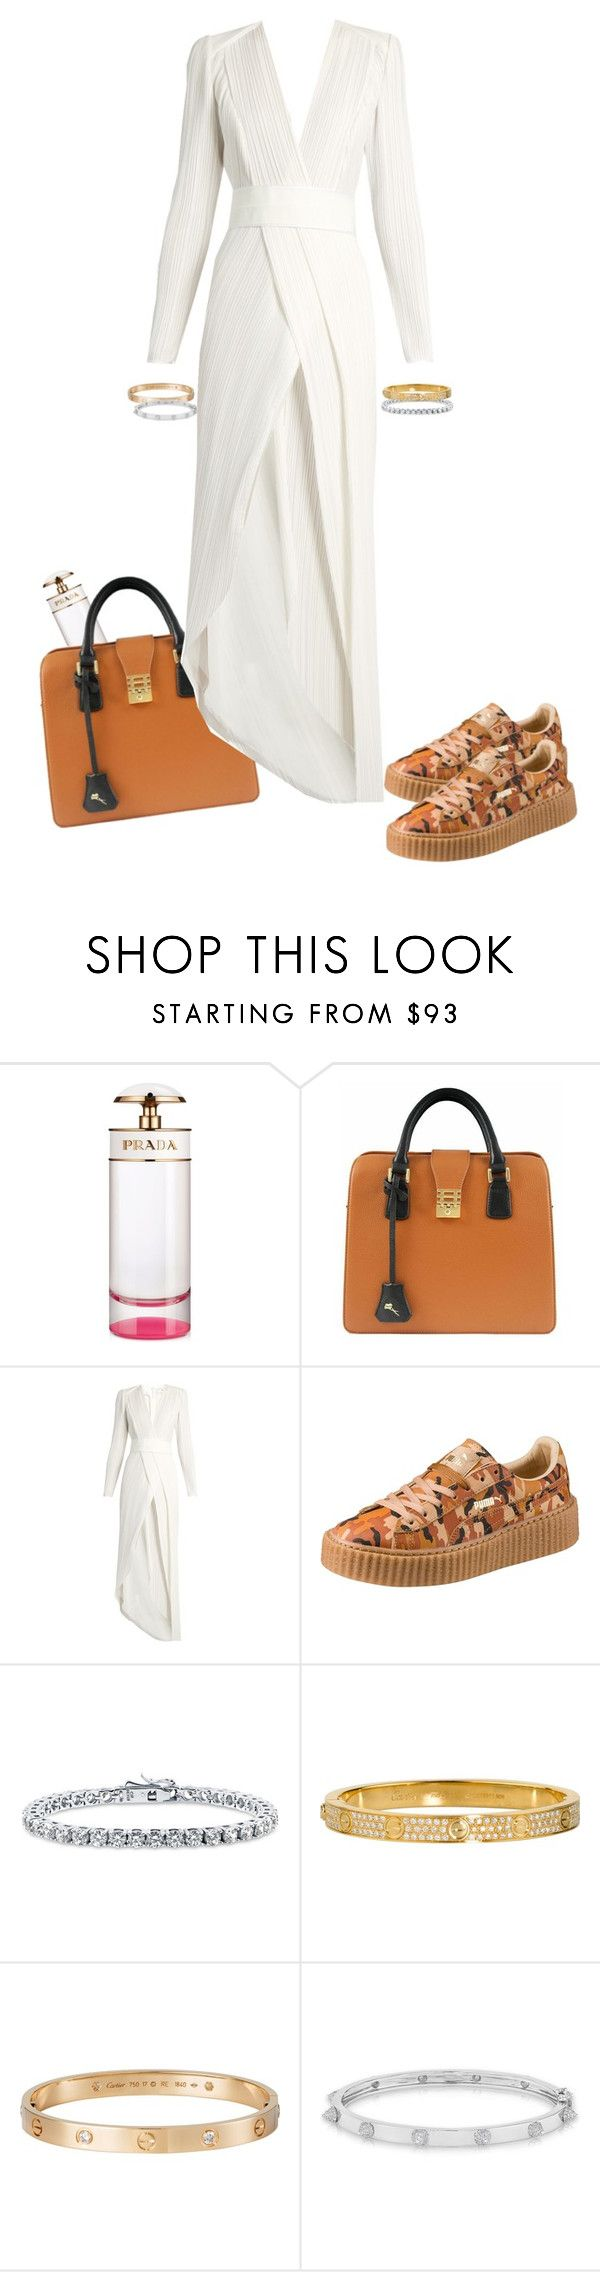 """Drake - pound cake"" by minniemauus ❤ liked on Polyvore featuring Prada, Florian London, Galvan, Puma, BERRICLE, Cartier and Anne Sisteron"